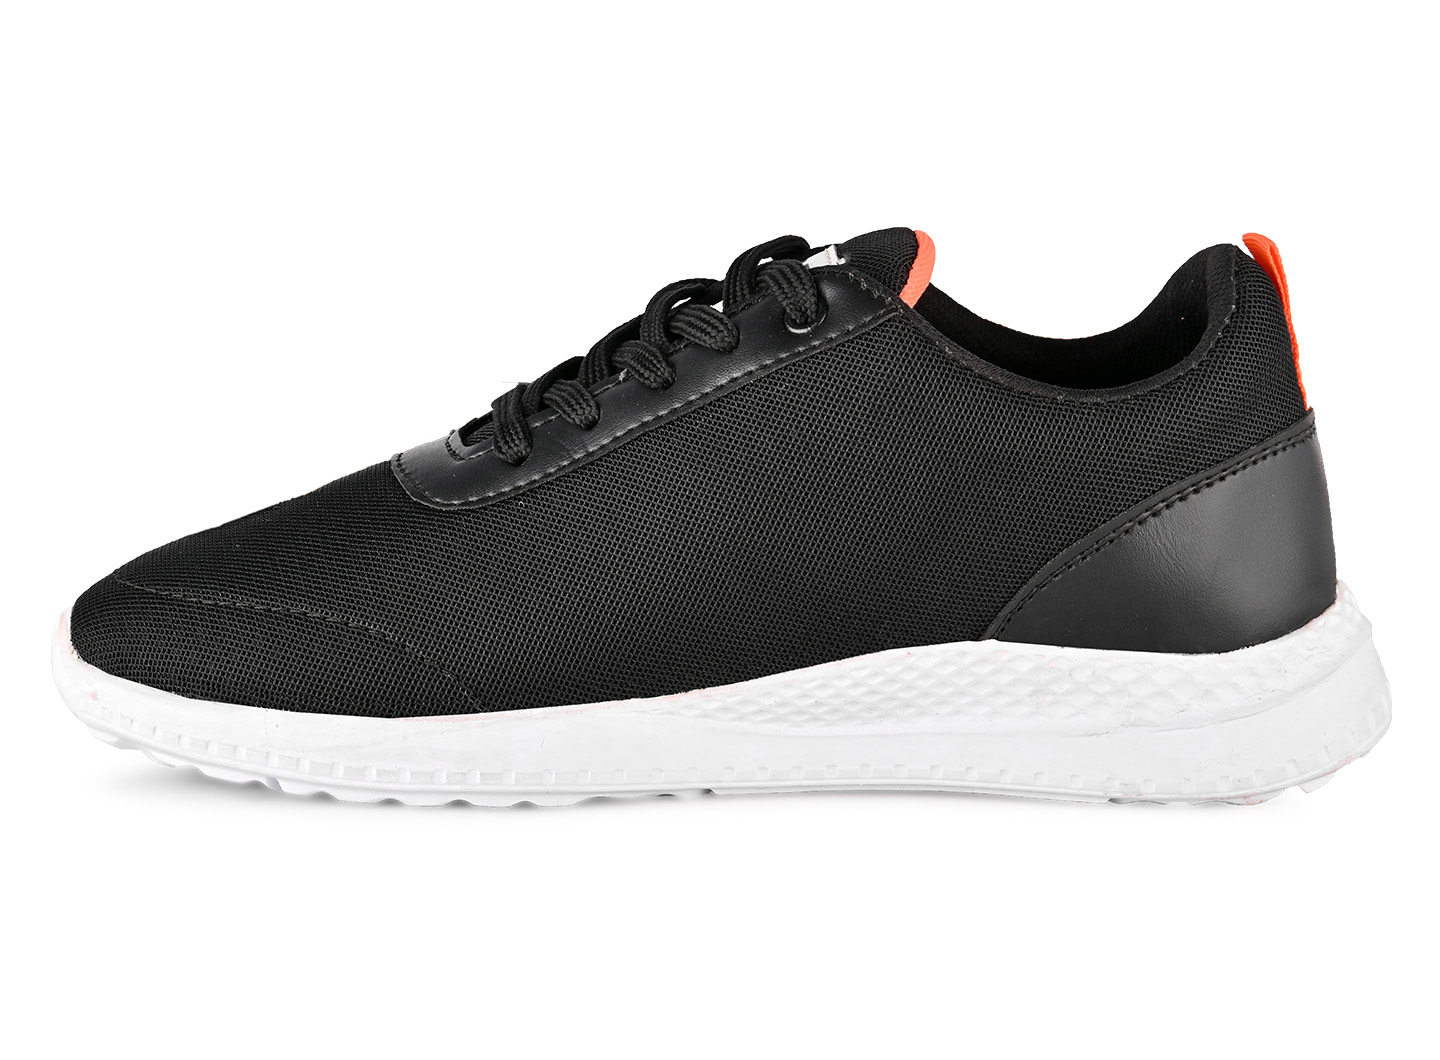 JK PORT Comfortable And Trendy Sports Shoes JKPSB55BLK Are Reliable For Any Sports (Black,7-10,8 PAIR)